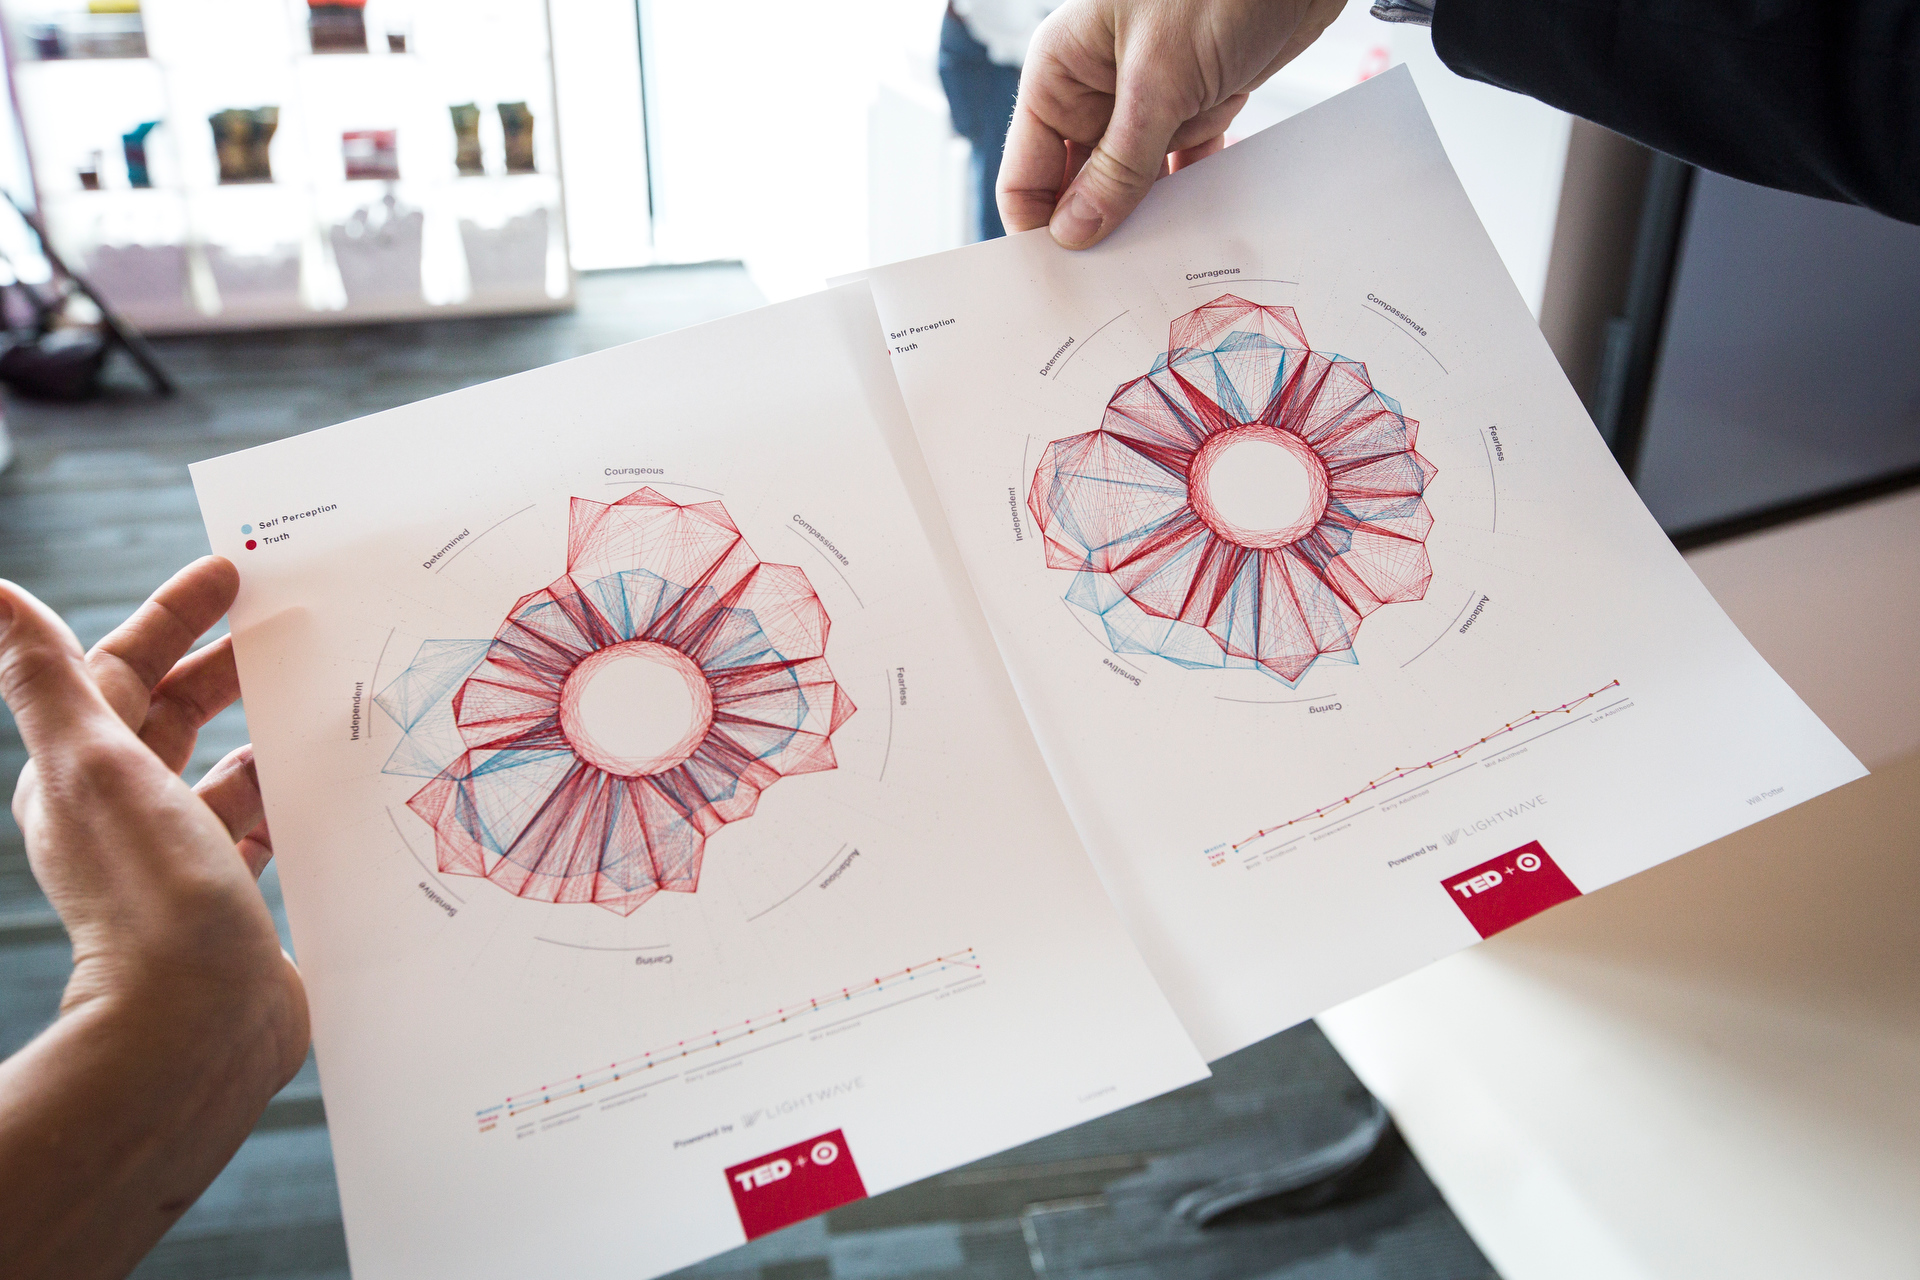 Attendees got an unusual look at their personality via beautiful designs, in Target's The Daring Truth Café. Photo: Ryan Lash/TED